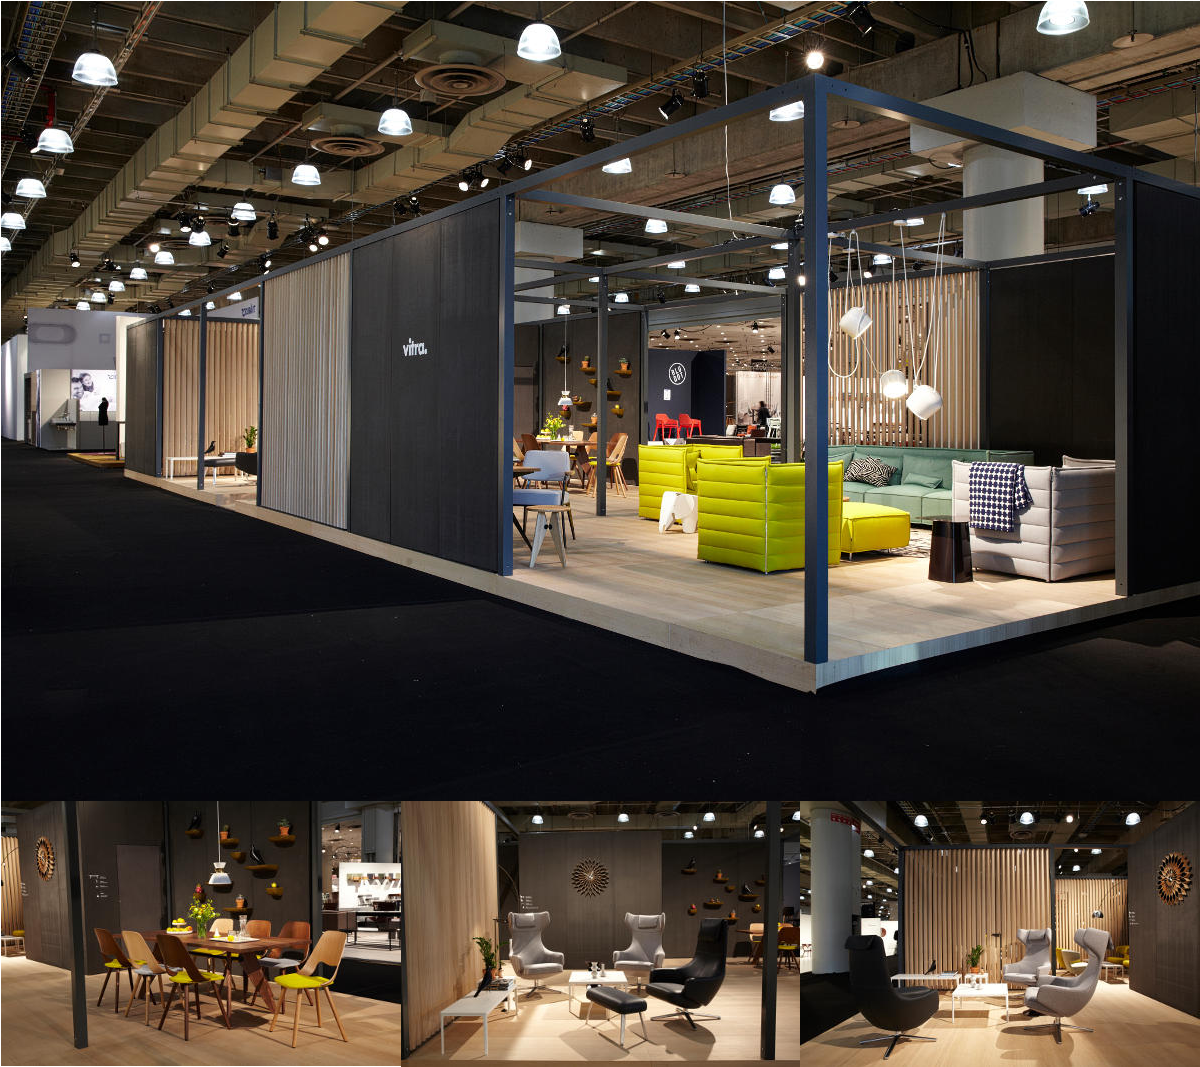 Stand van Vitra 2014 in International Contemporary Furniture Fair ICFF in New York